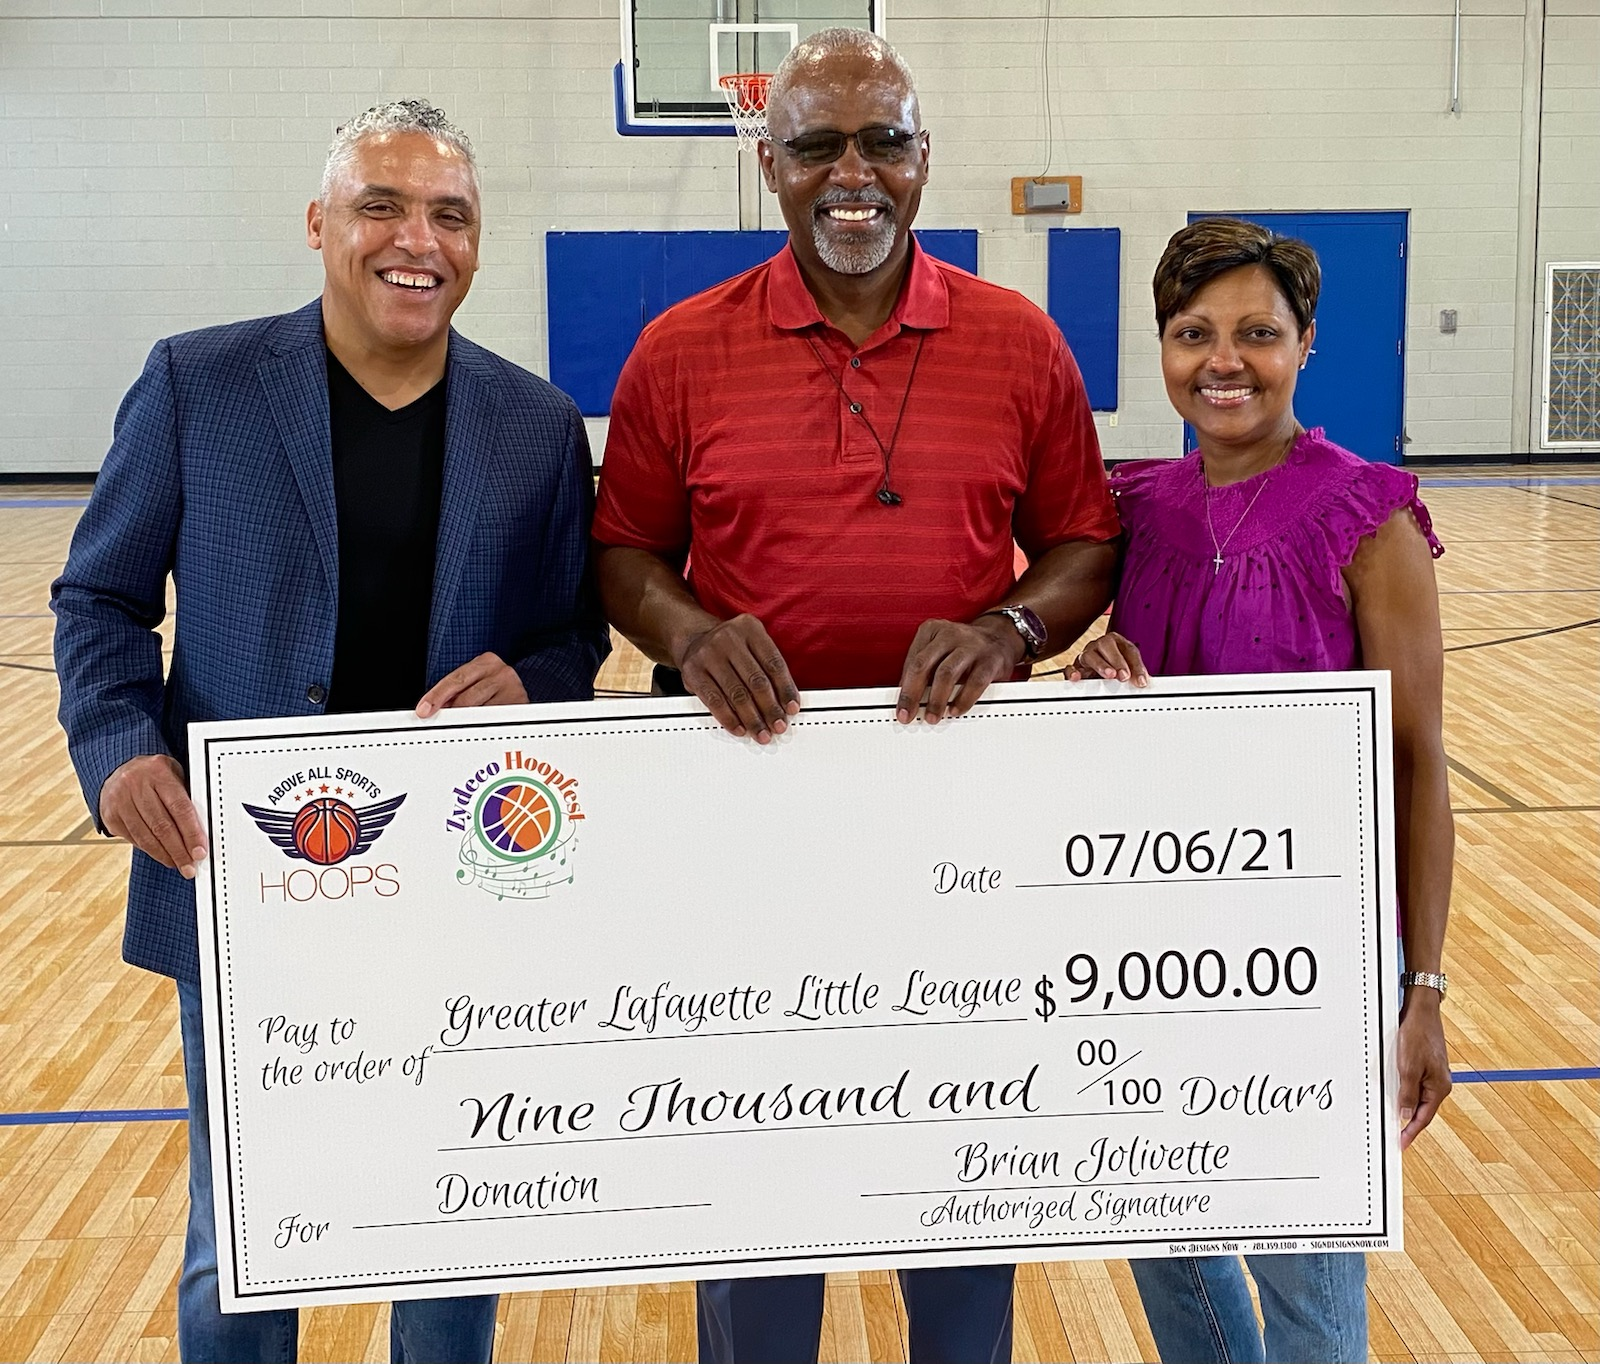 Zydeco Hoopfest Organizers Donate $9,000 to PARC